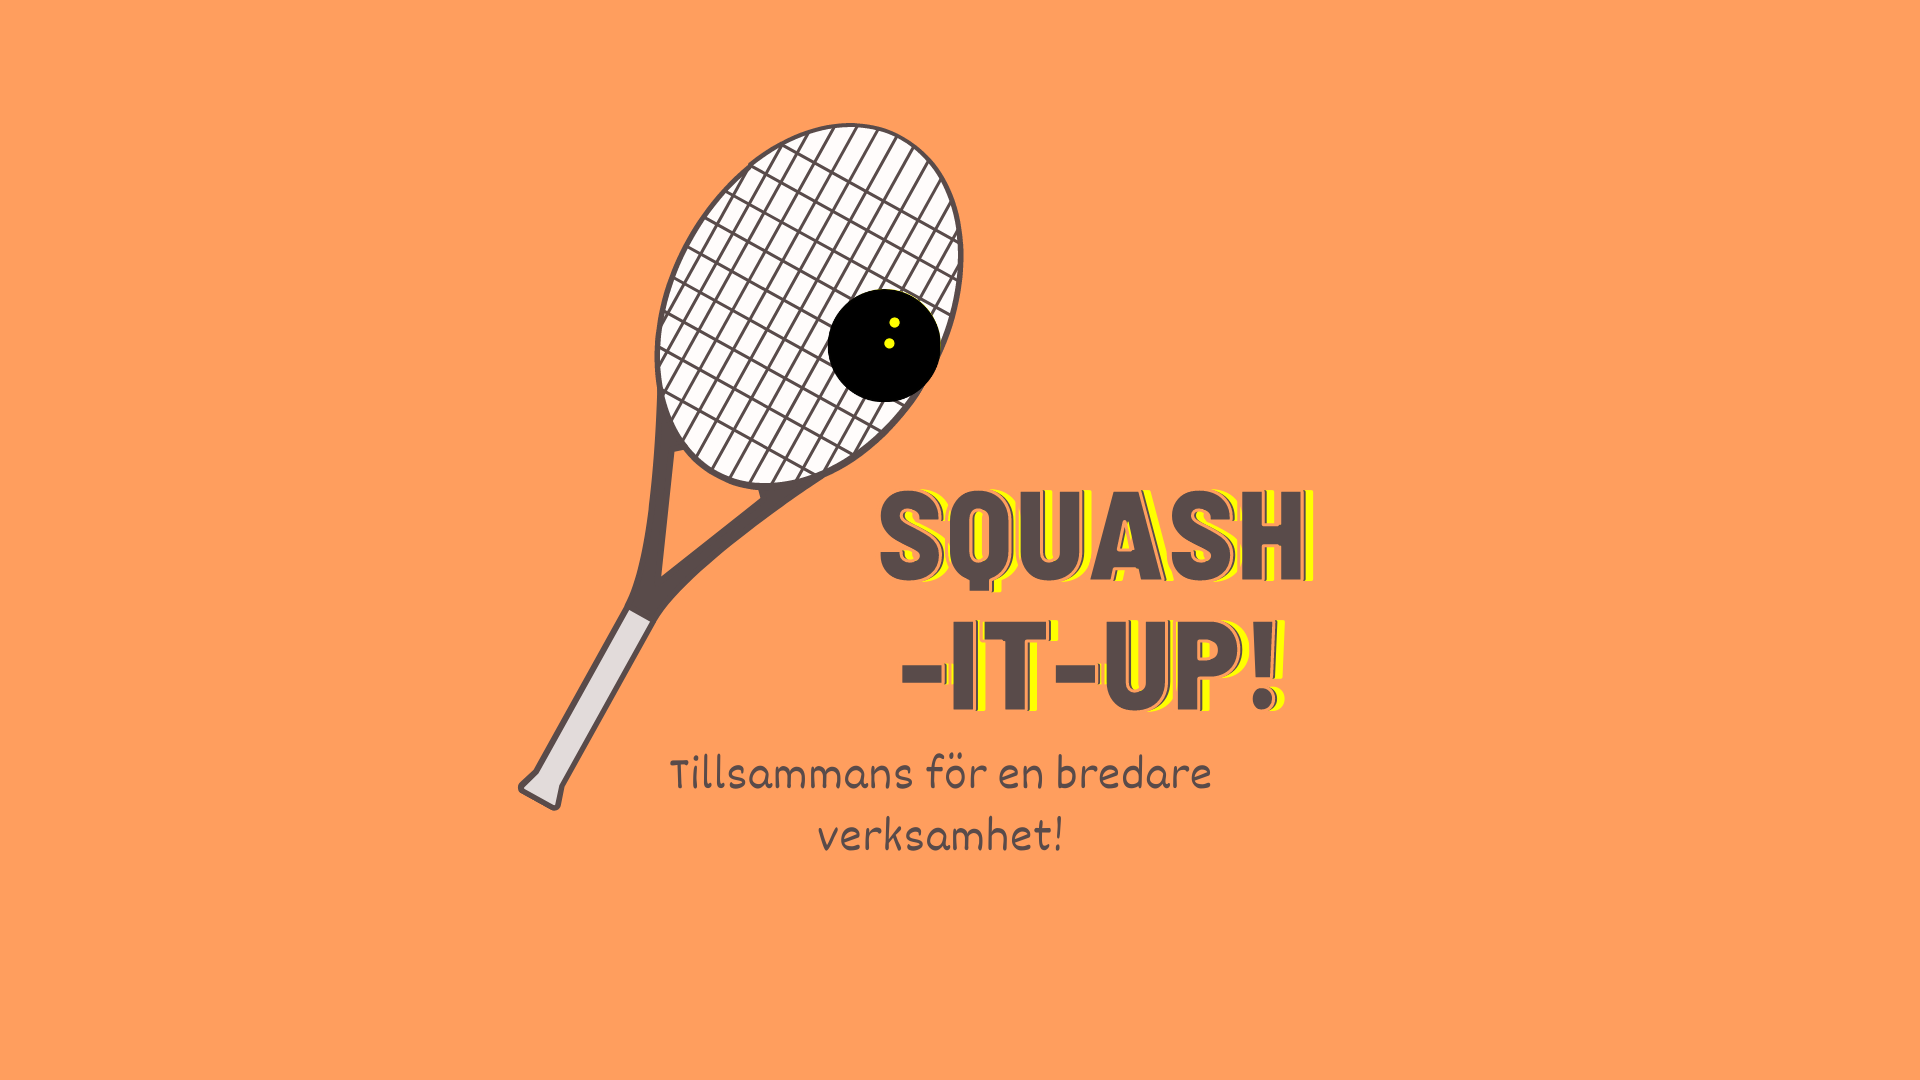 Vad har Squash-it-up! gjort hitills?